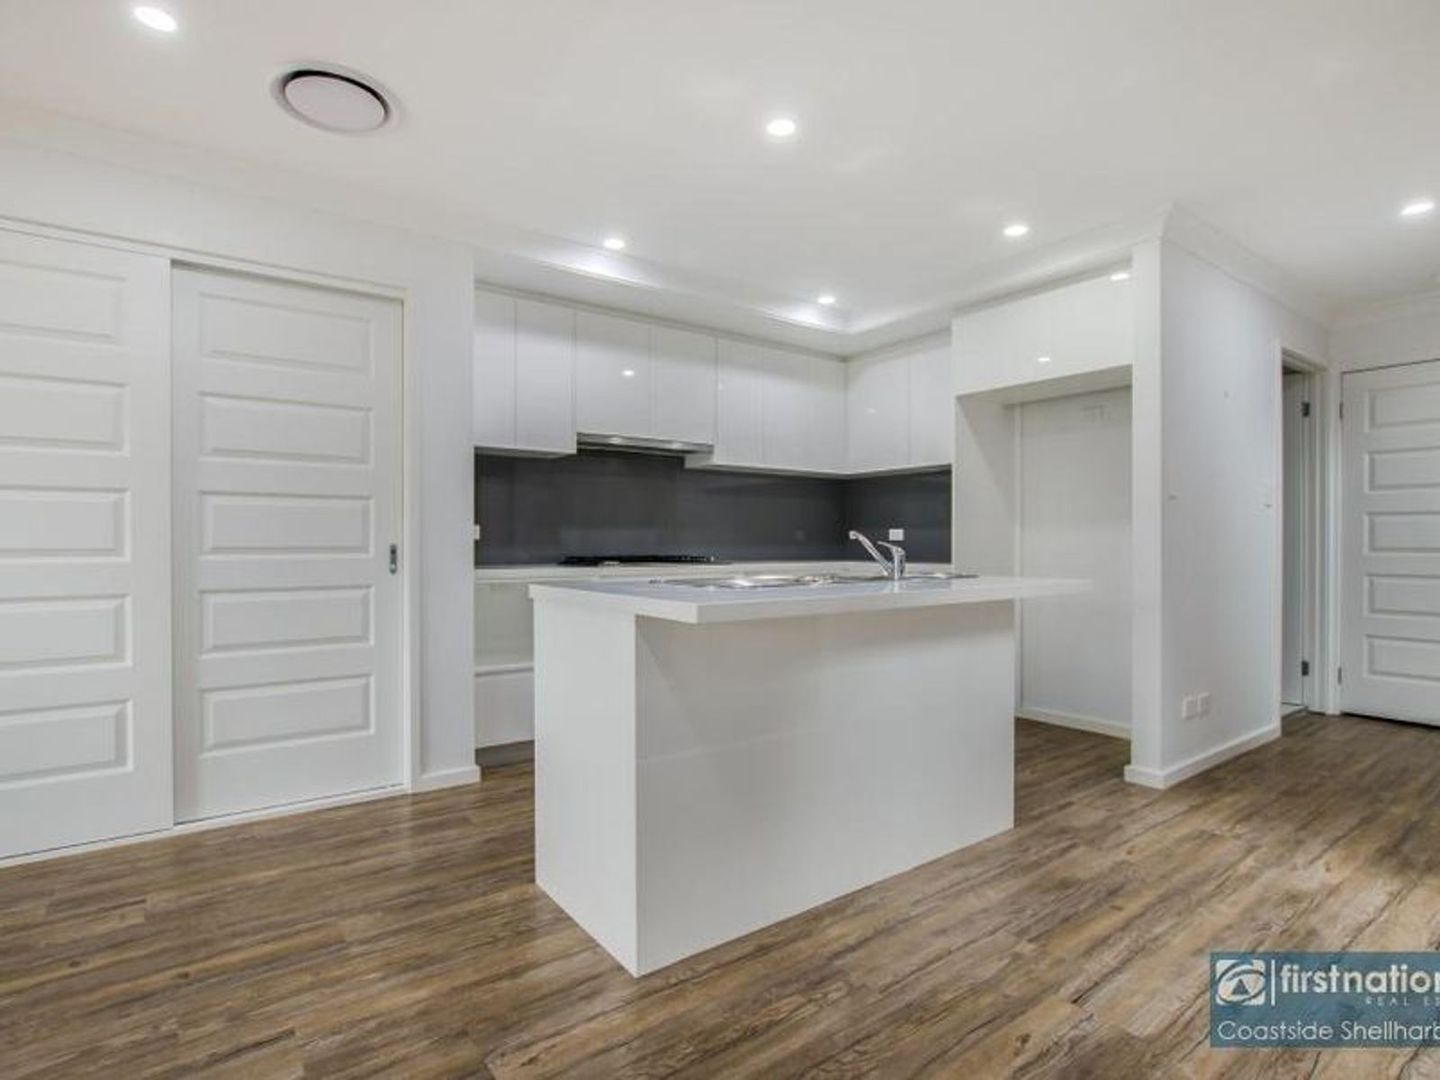 26A Cowries Avenue, Shell Cove NSW 2529, Image 0